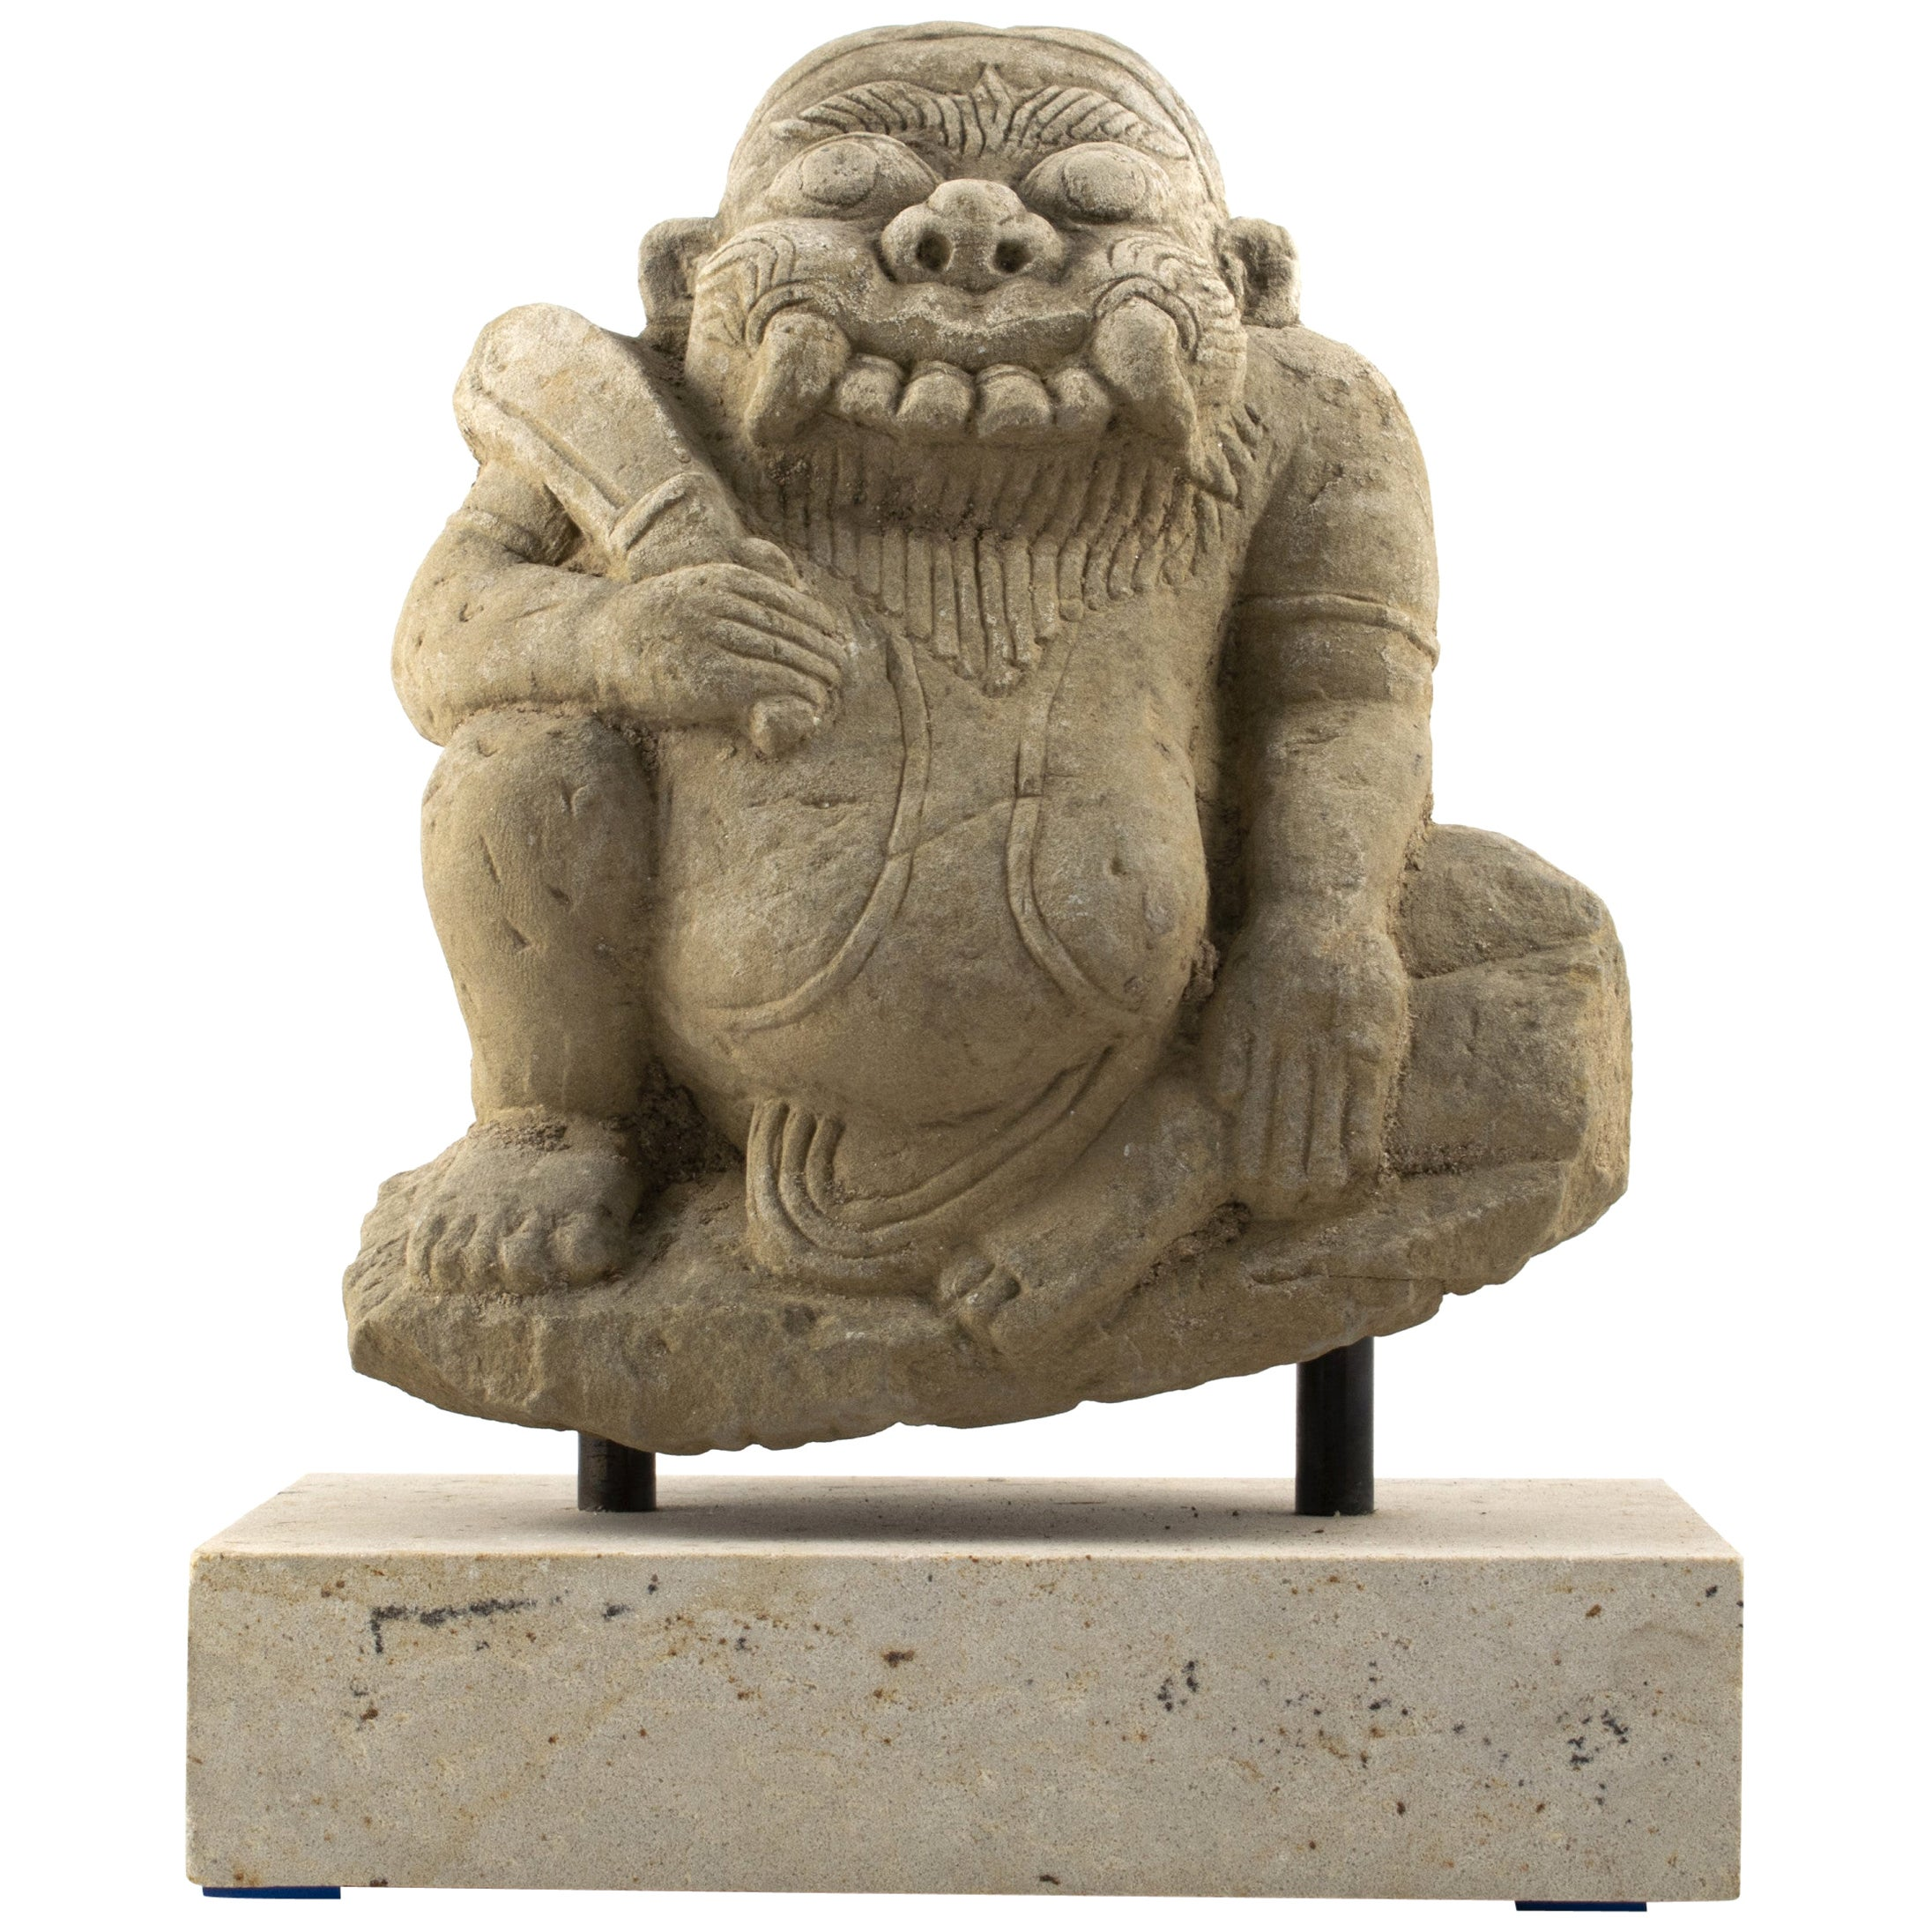 17th-18th Century Carved Sandstone Temple Sculpture of Demon from Burma